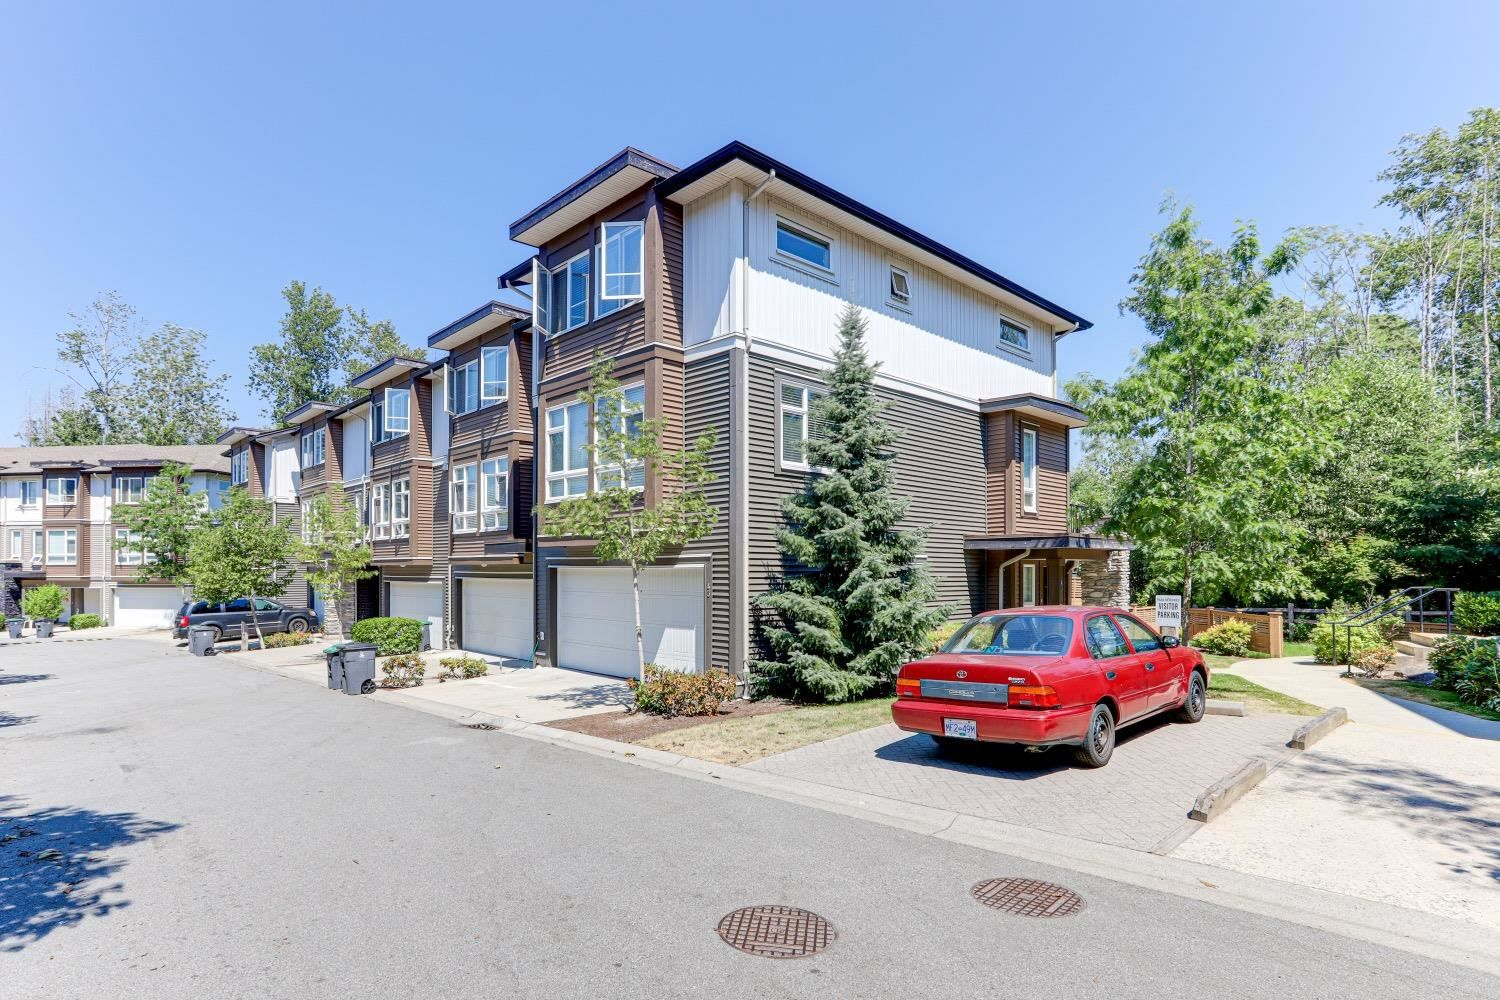 """Main Photo: 43 5888 144 Street in Surrey: Sullivan Station Townhouse for sale in """"ONE44"""" : MLS®# R2597936"""